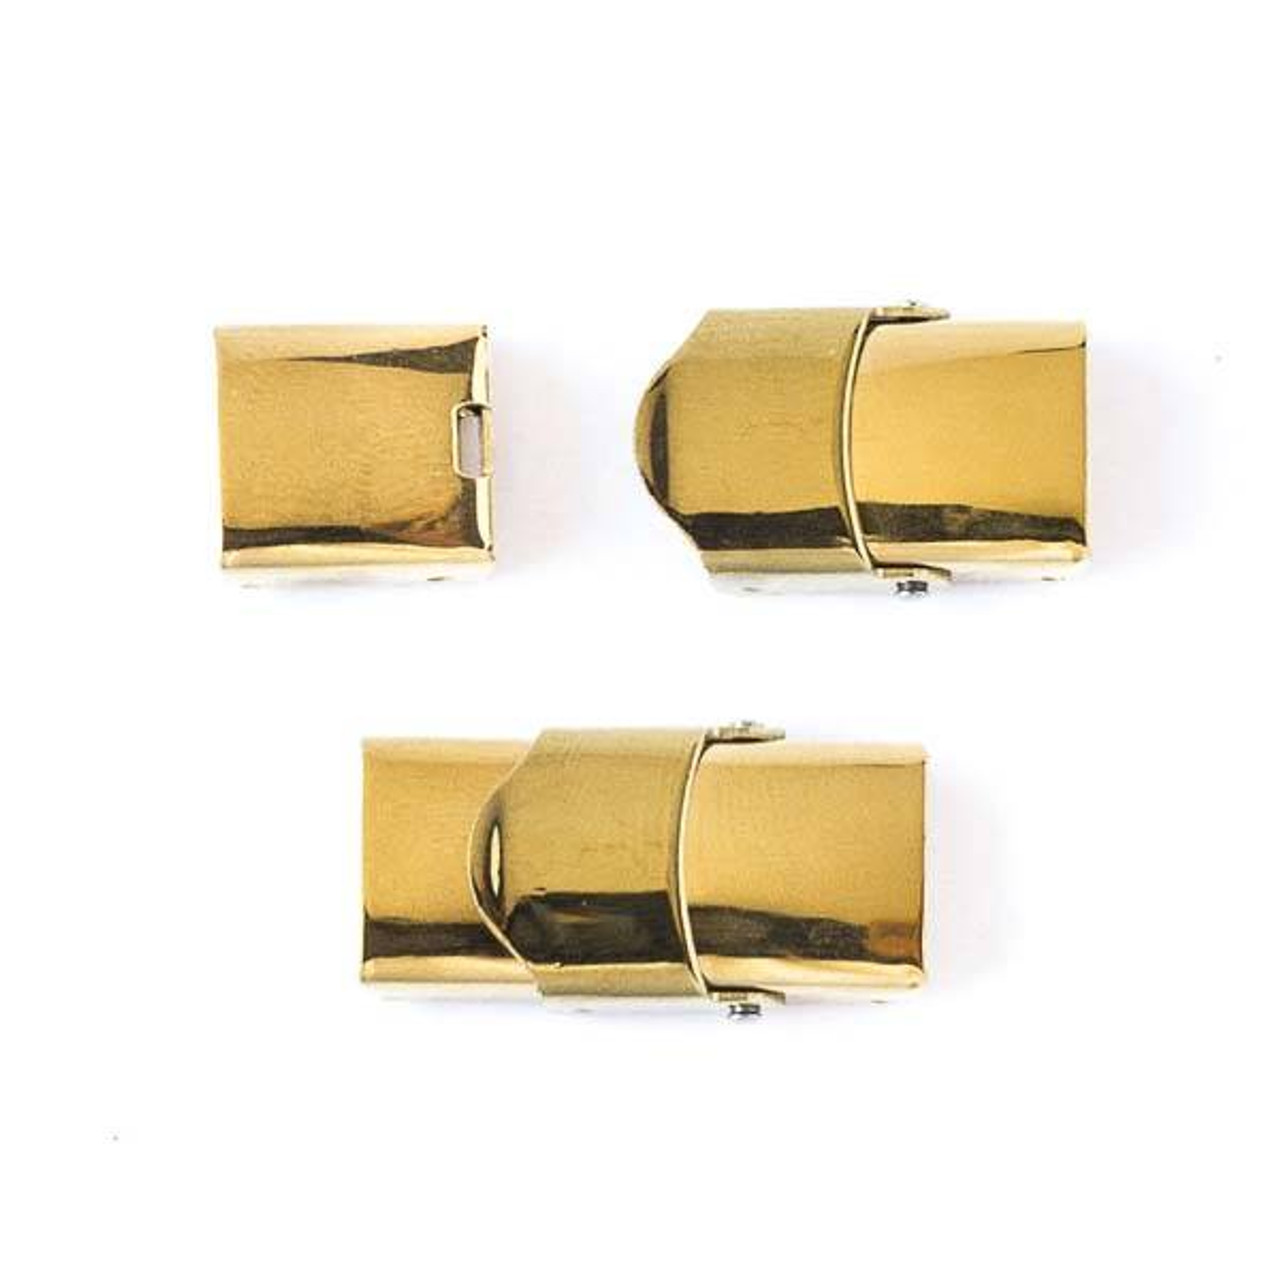 Gold Colored Stainless Steel 14x25mm Cord Clasp 1 Per Bag Ctbmc022g Cherry Tree Beads,Sage And Lavender Color Scheme